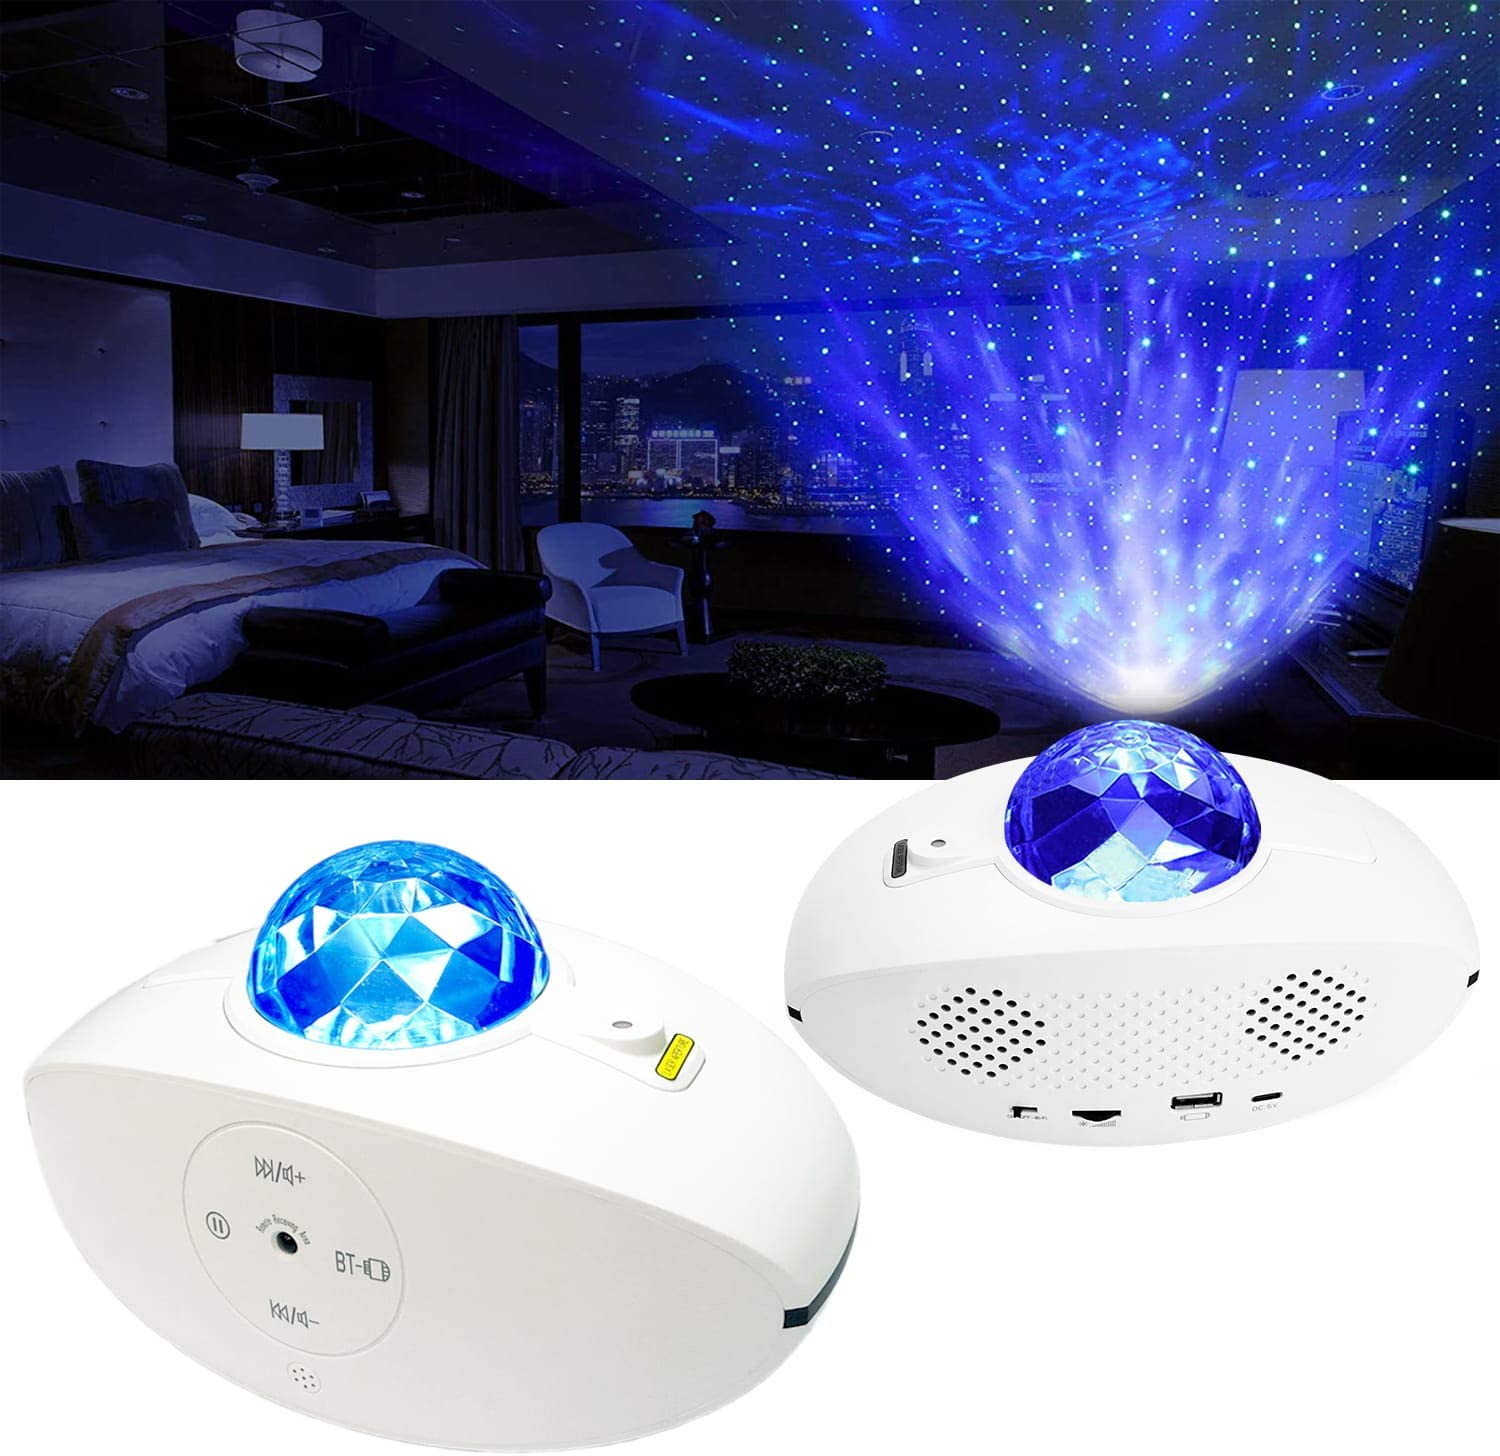 Starry Night Light Projector, 3 in 1 Galaxy Light Projector (Alexa & Google Home Compatible) LED Nebula Star Clouds with Remote Control, Bluetooth Speaker, Baby, Ceiling, Bedroom, Birthday Party